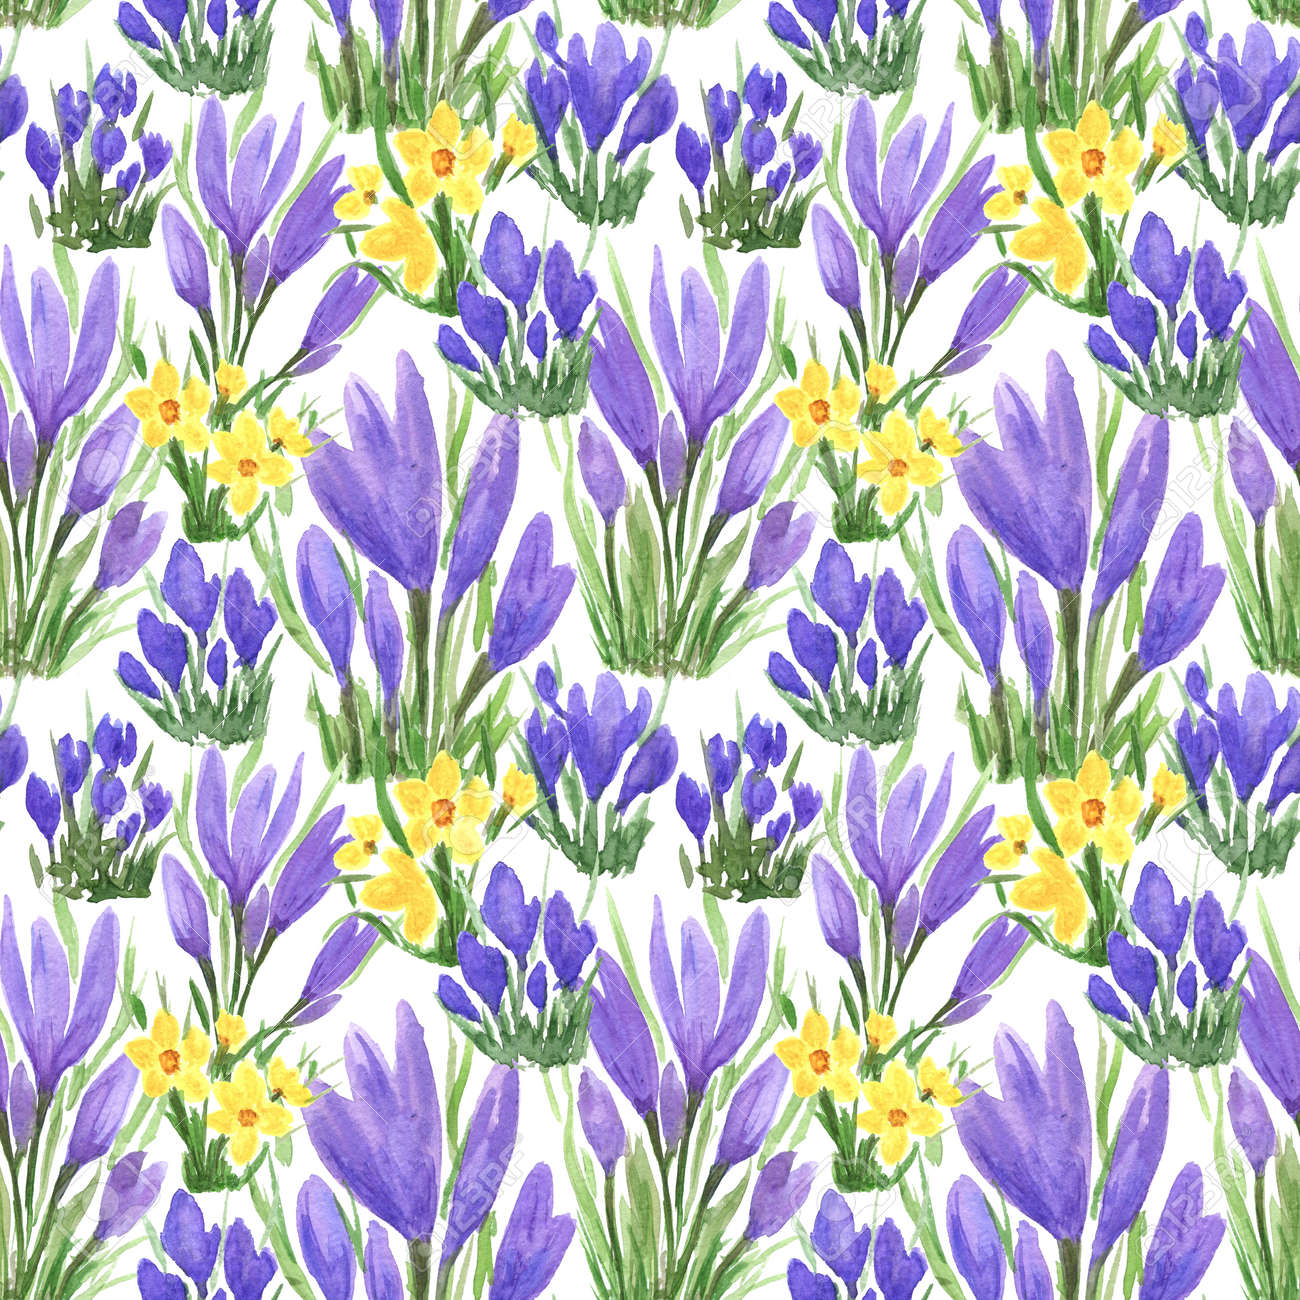 Waterclor colorful seamless pattern of spring flowers. Hand Illustration of primrose for creating fabrics, textile, decoupage, wallpapers, print, gift wrapping paper, invitations, textile. - 166064029